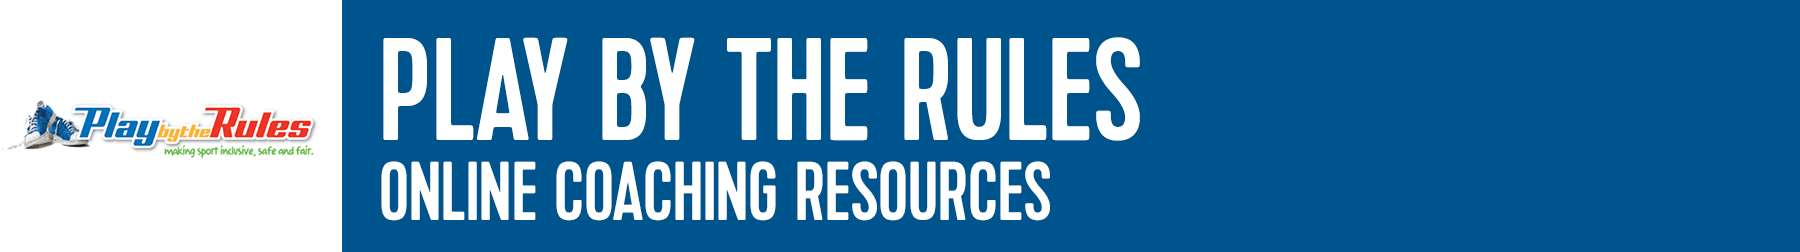 Play by the rules resources